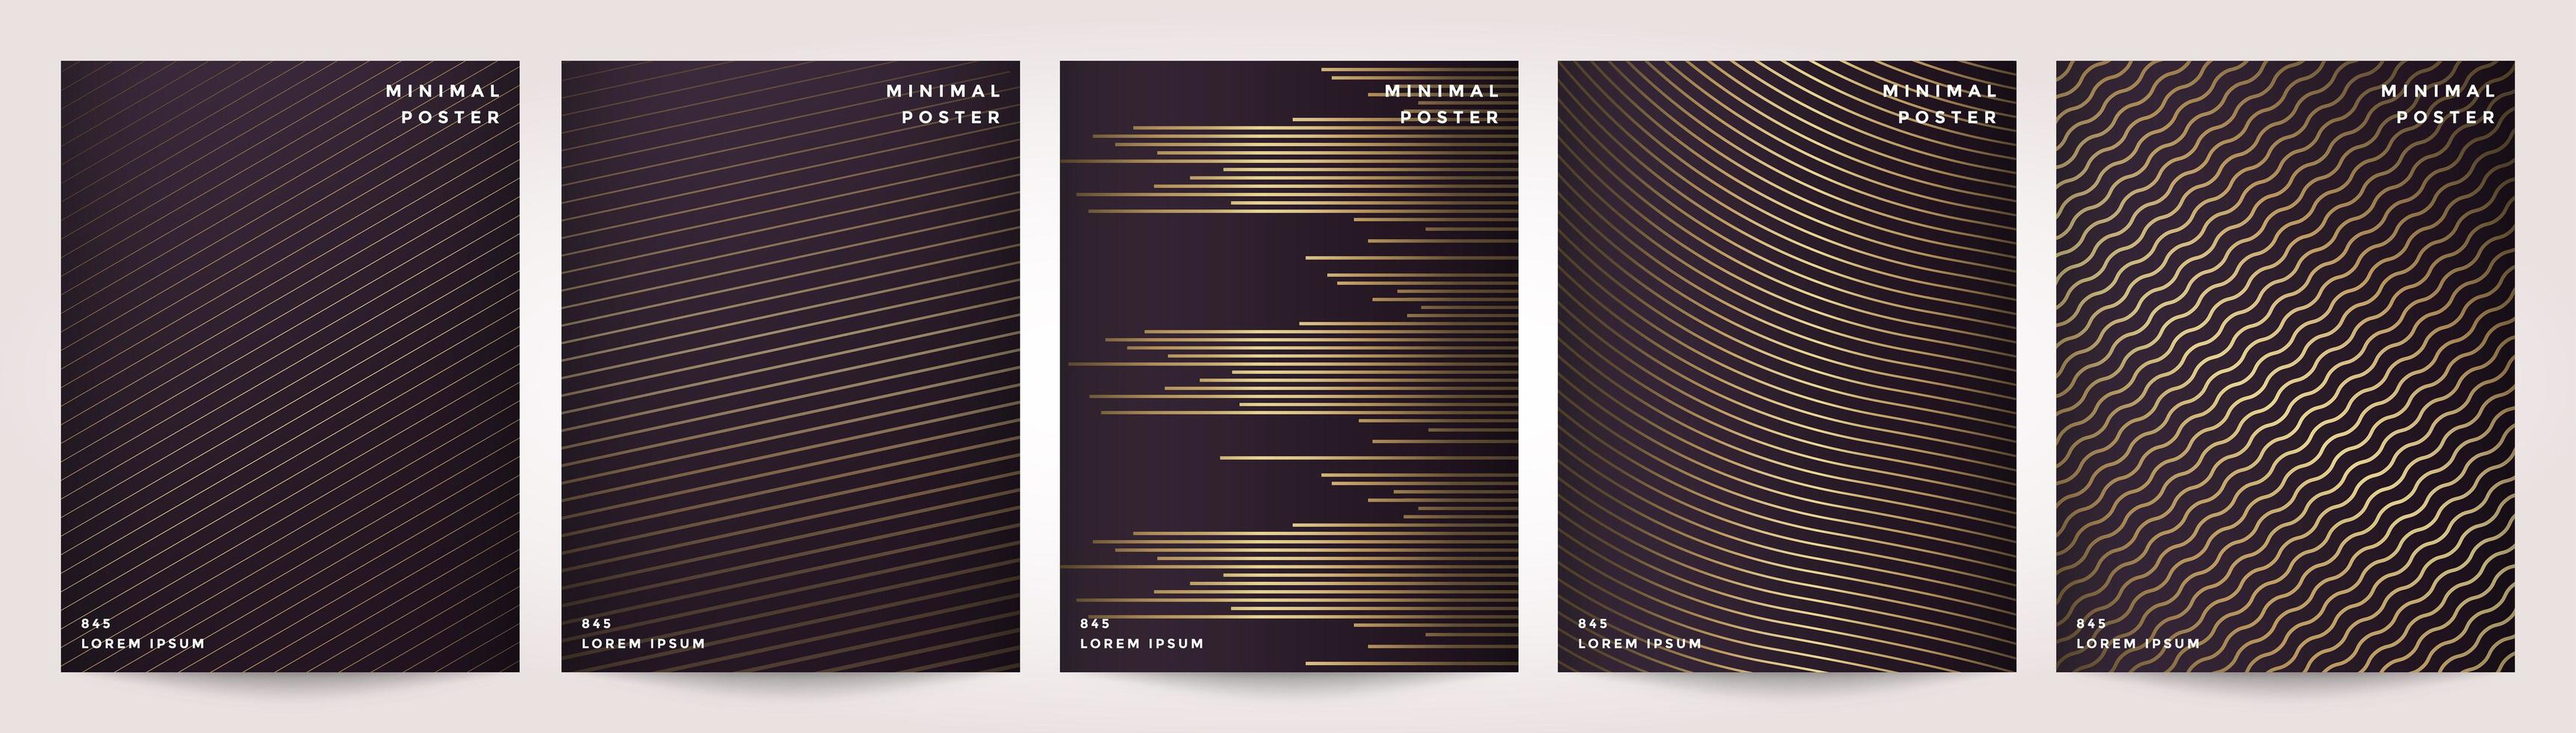 Minimal Cover in Gold Abstract Line Pattern for Poster Design Set vector